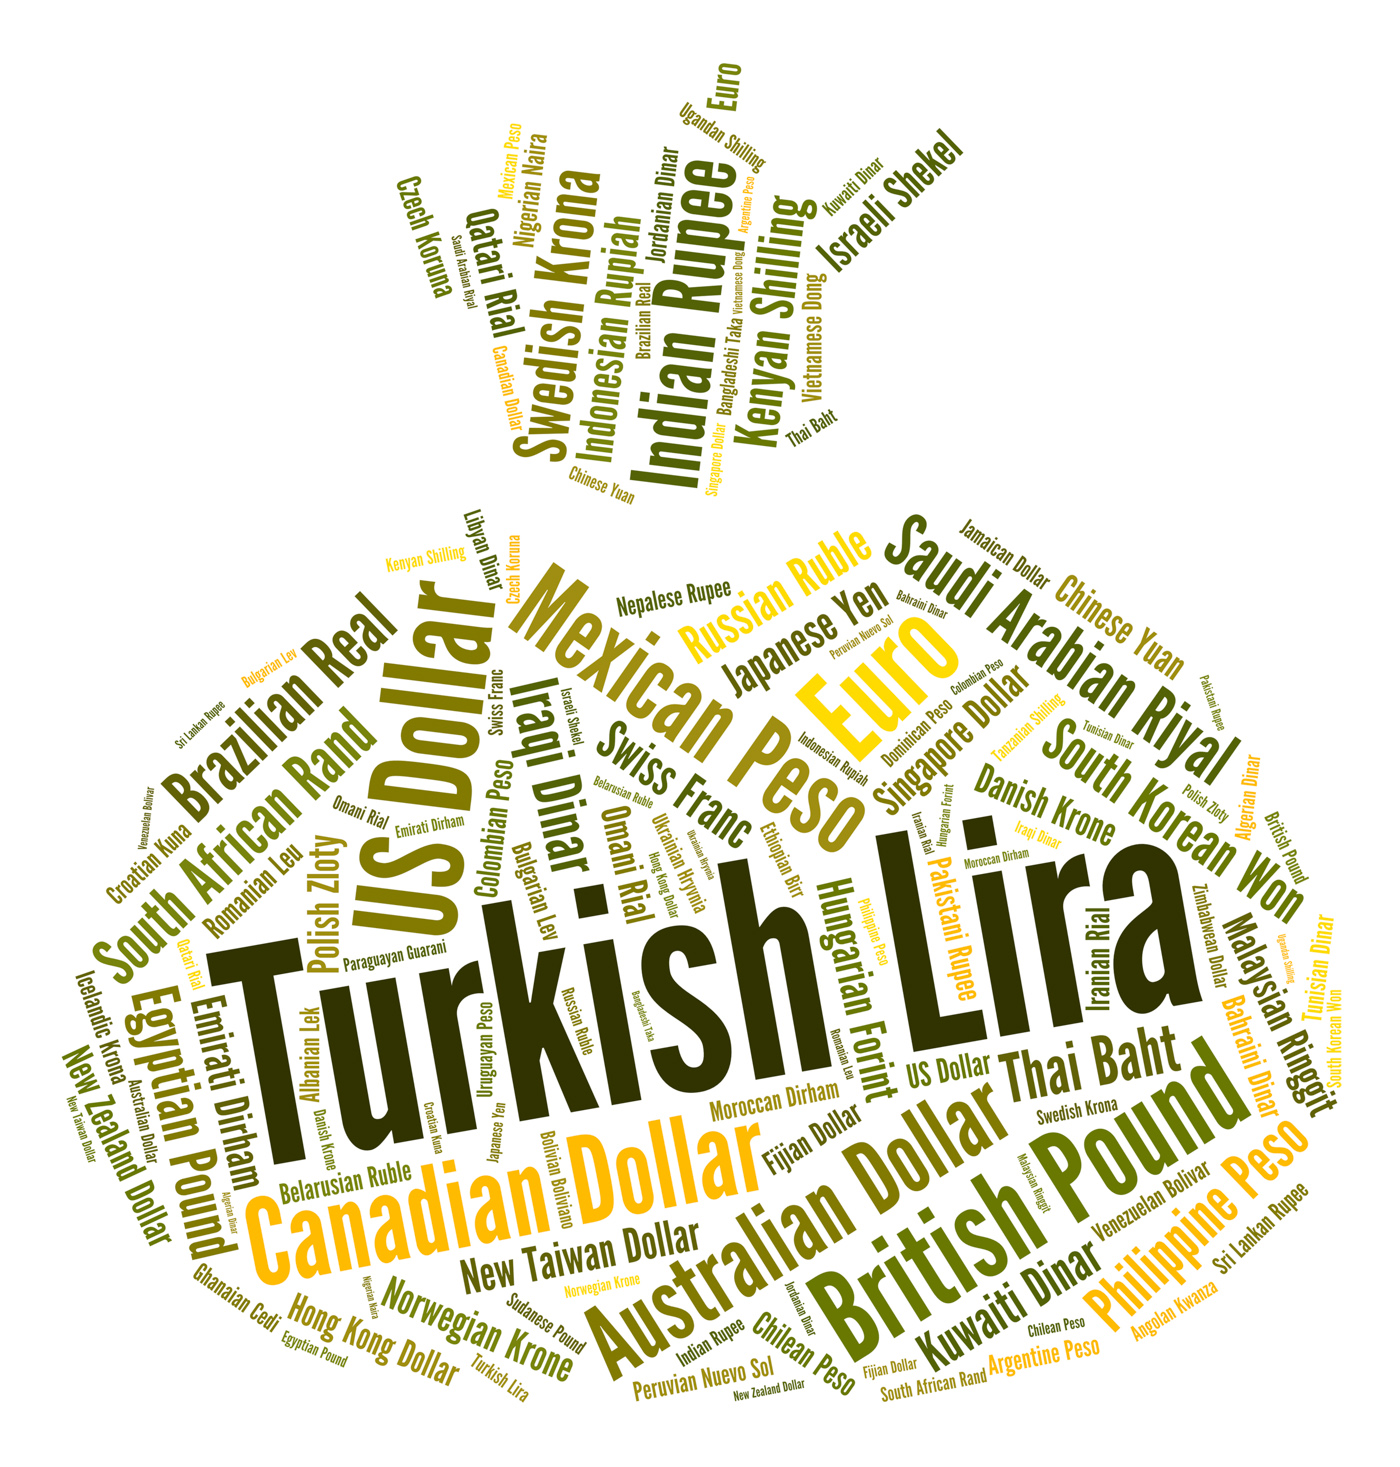 Forex turkey